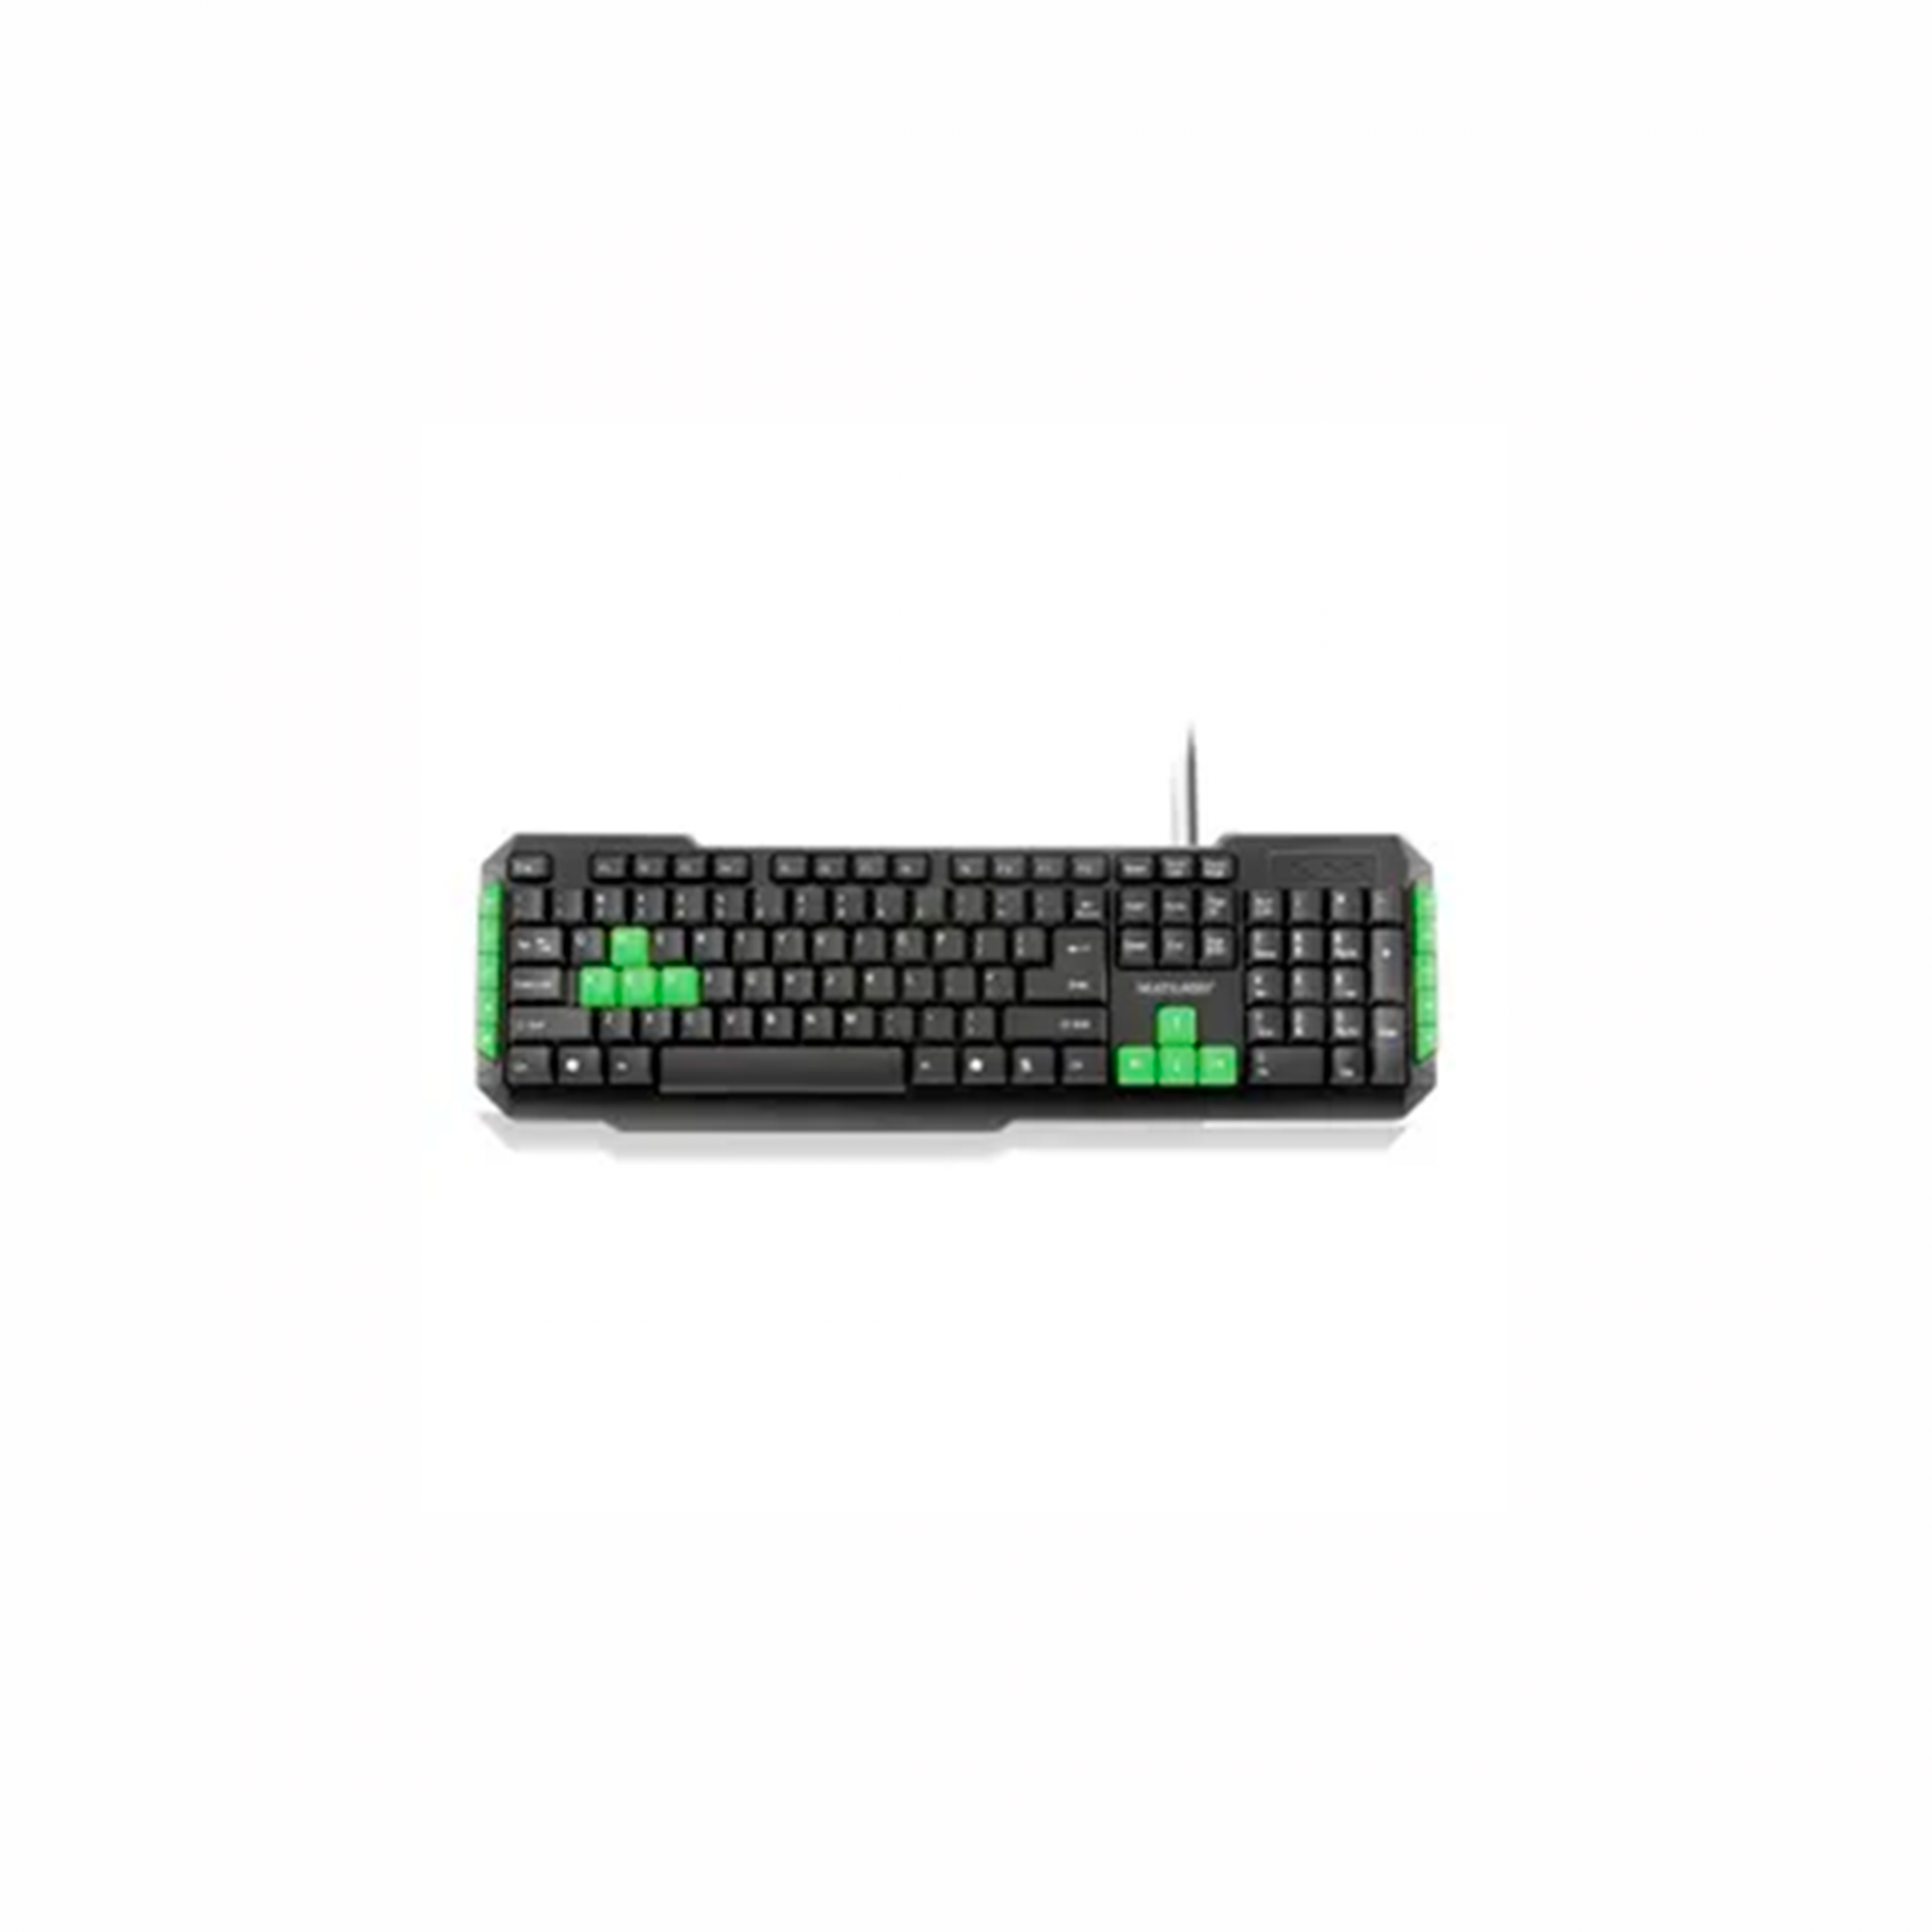 TECLADO MULTIMIDIA GAMER TC201 VERDE MUL